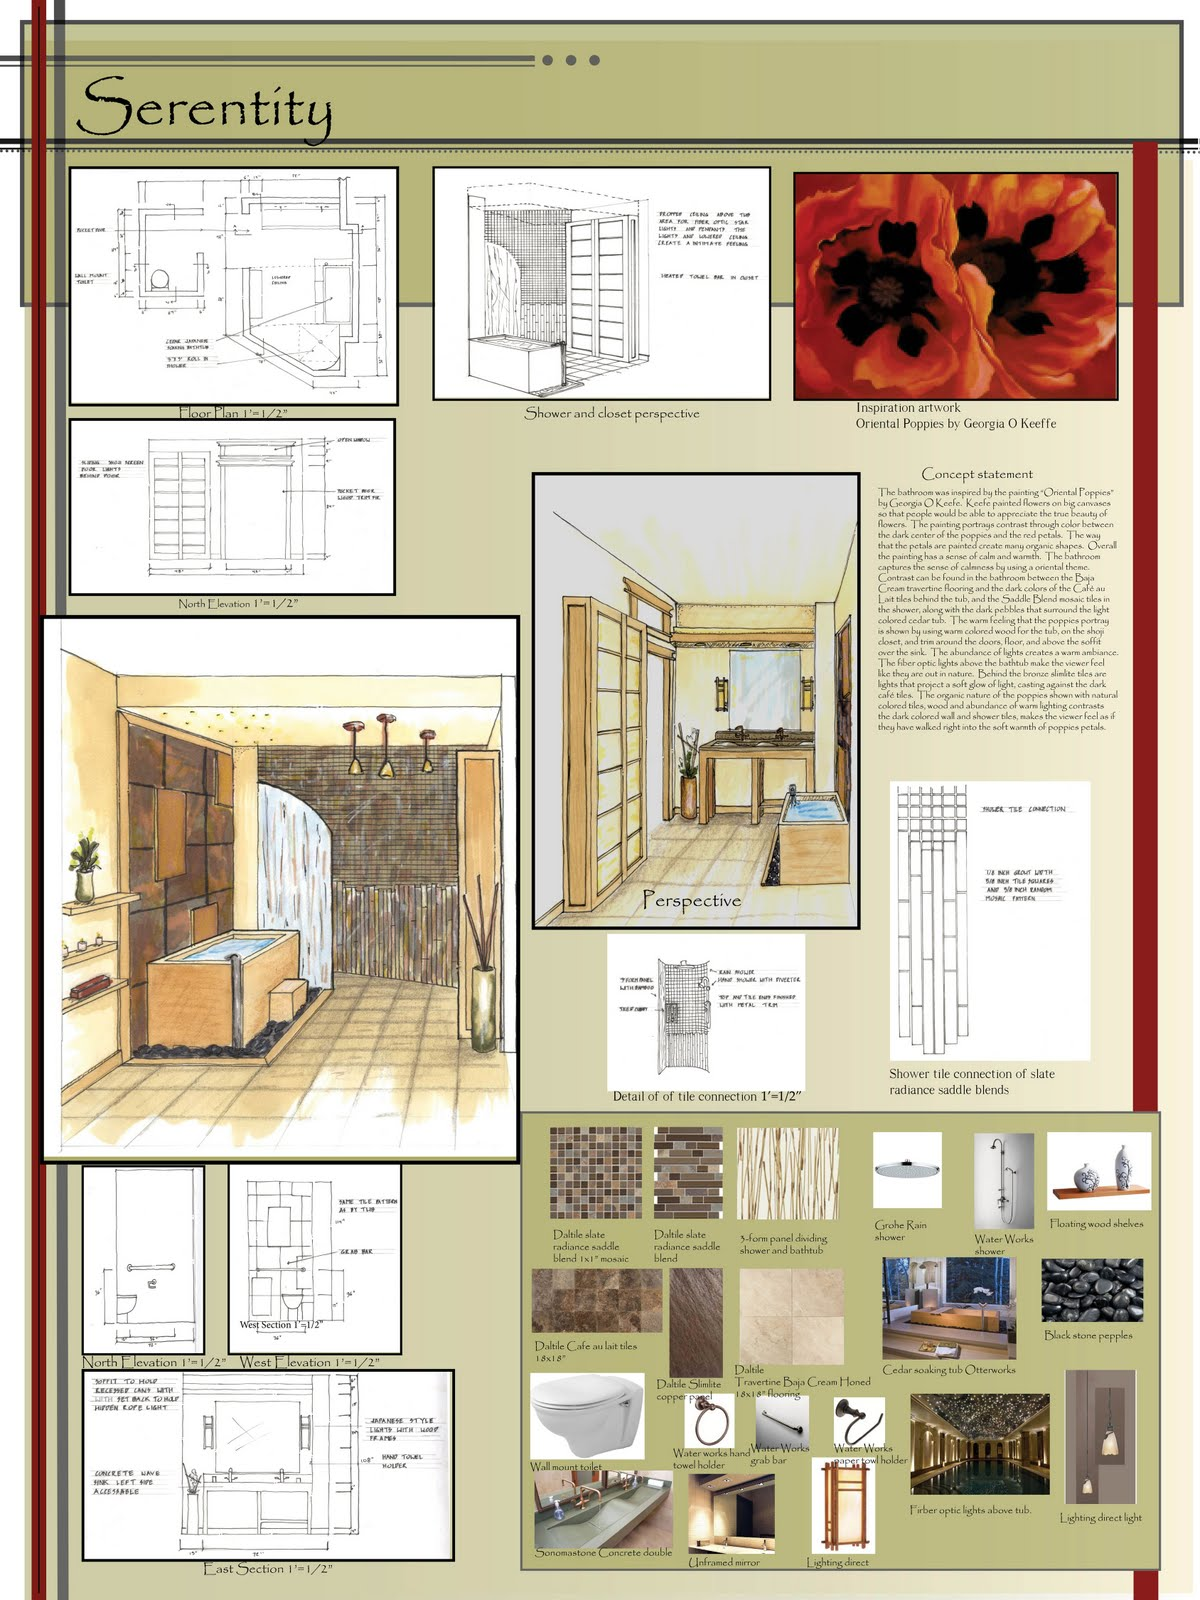 WSU Interior Design 2014: Winner in the Daltile competition